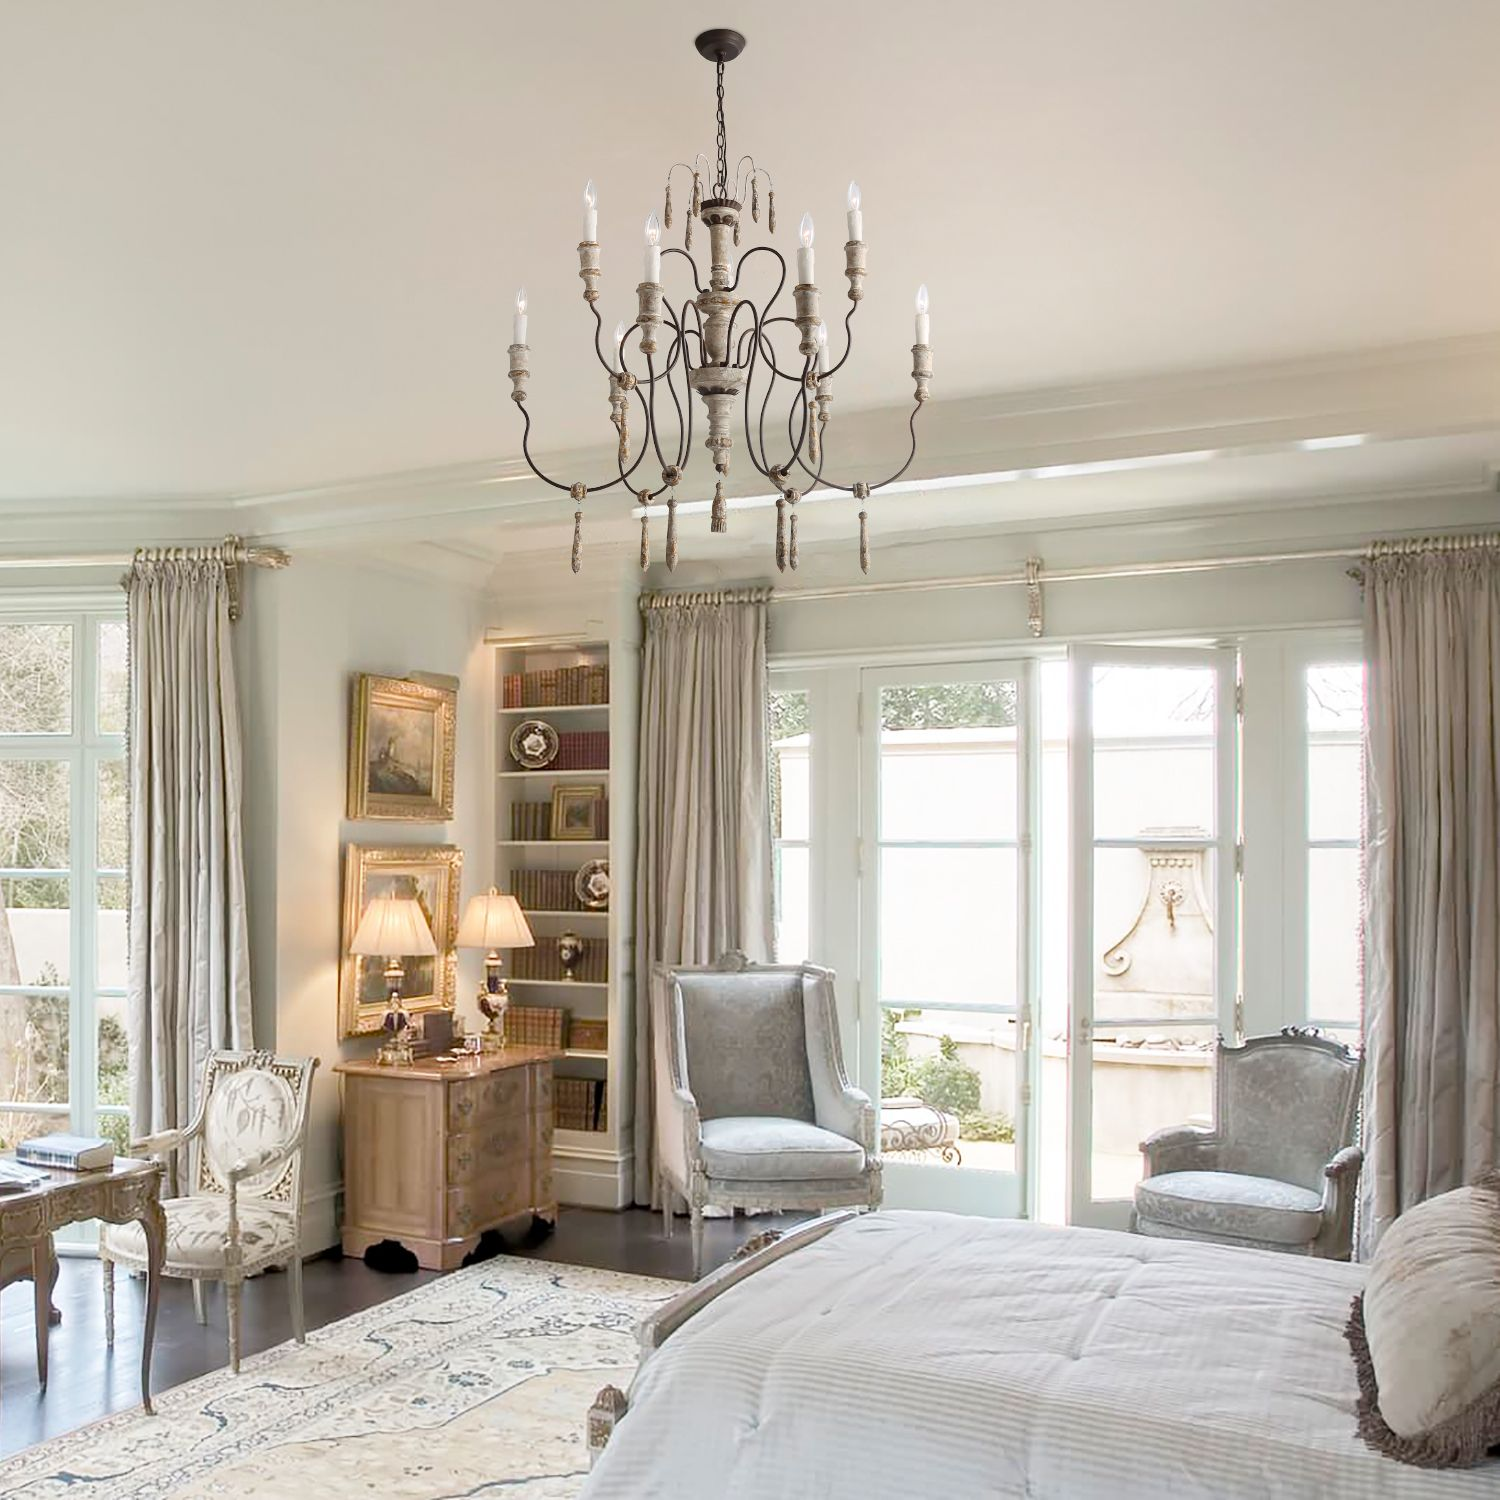 8 Light Shabby Chic French Country Chandeliers French Country Chandelier Country Chandelier French Country Bedrooms Download french country bedroom